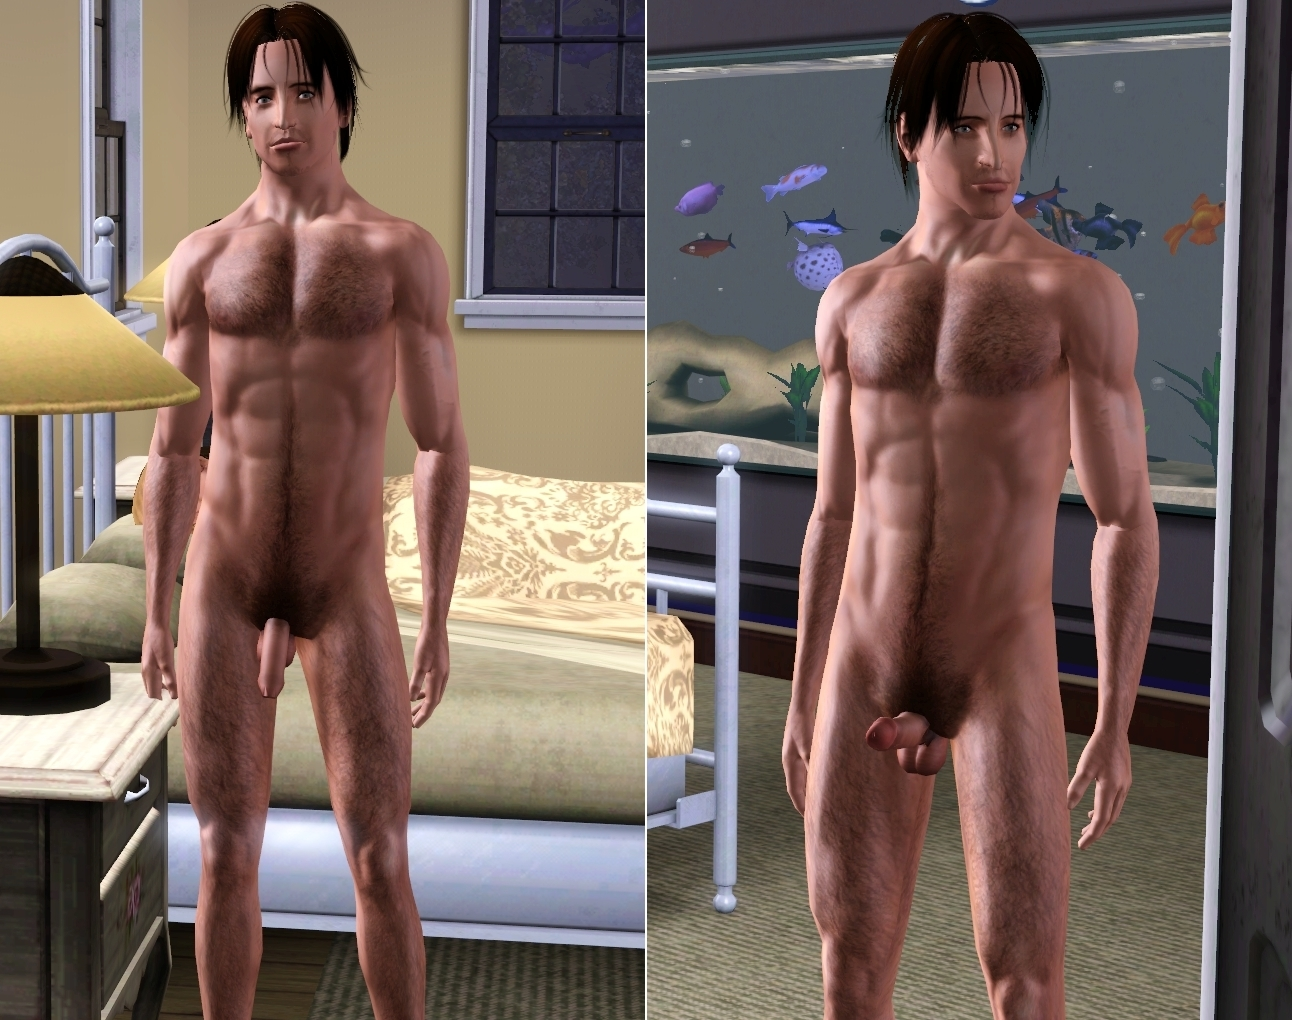 Sims 2 pc naked cheats hentai photo